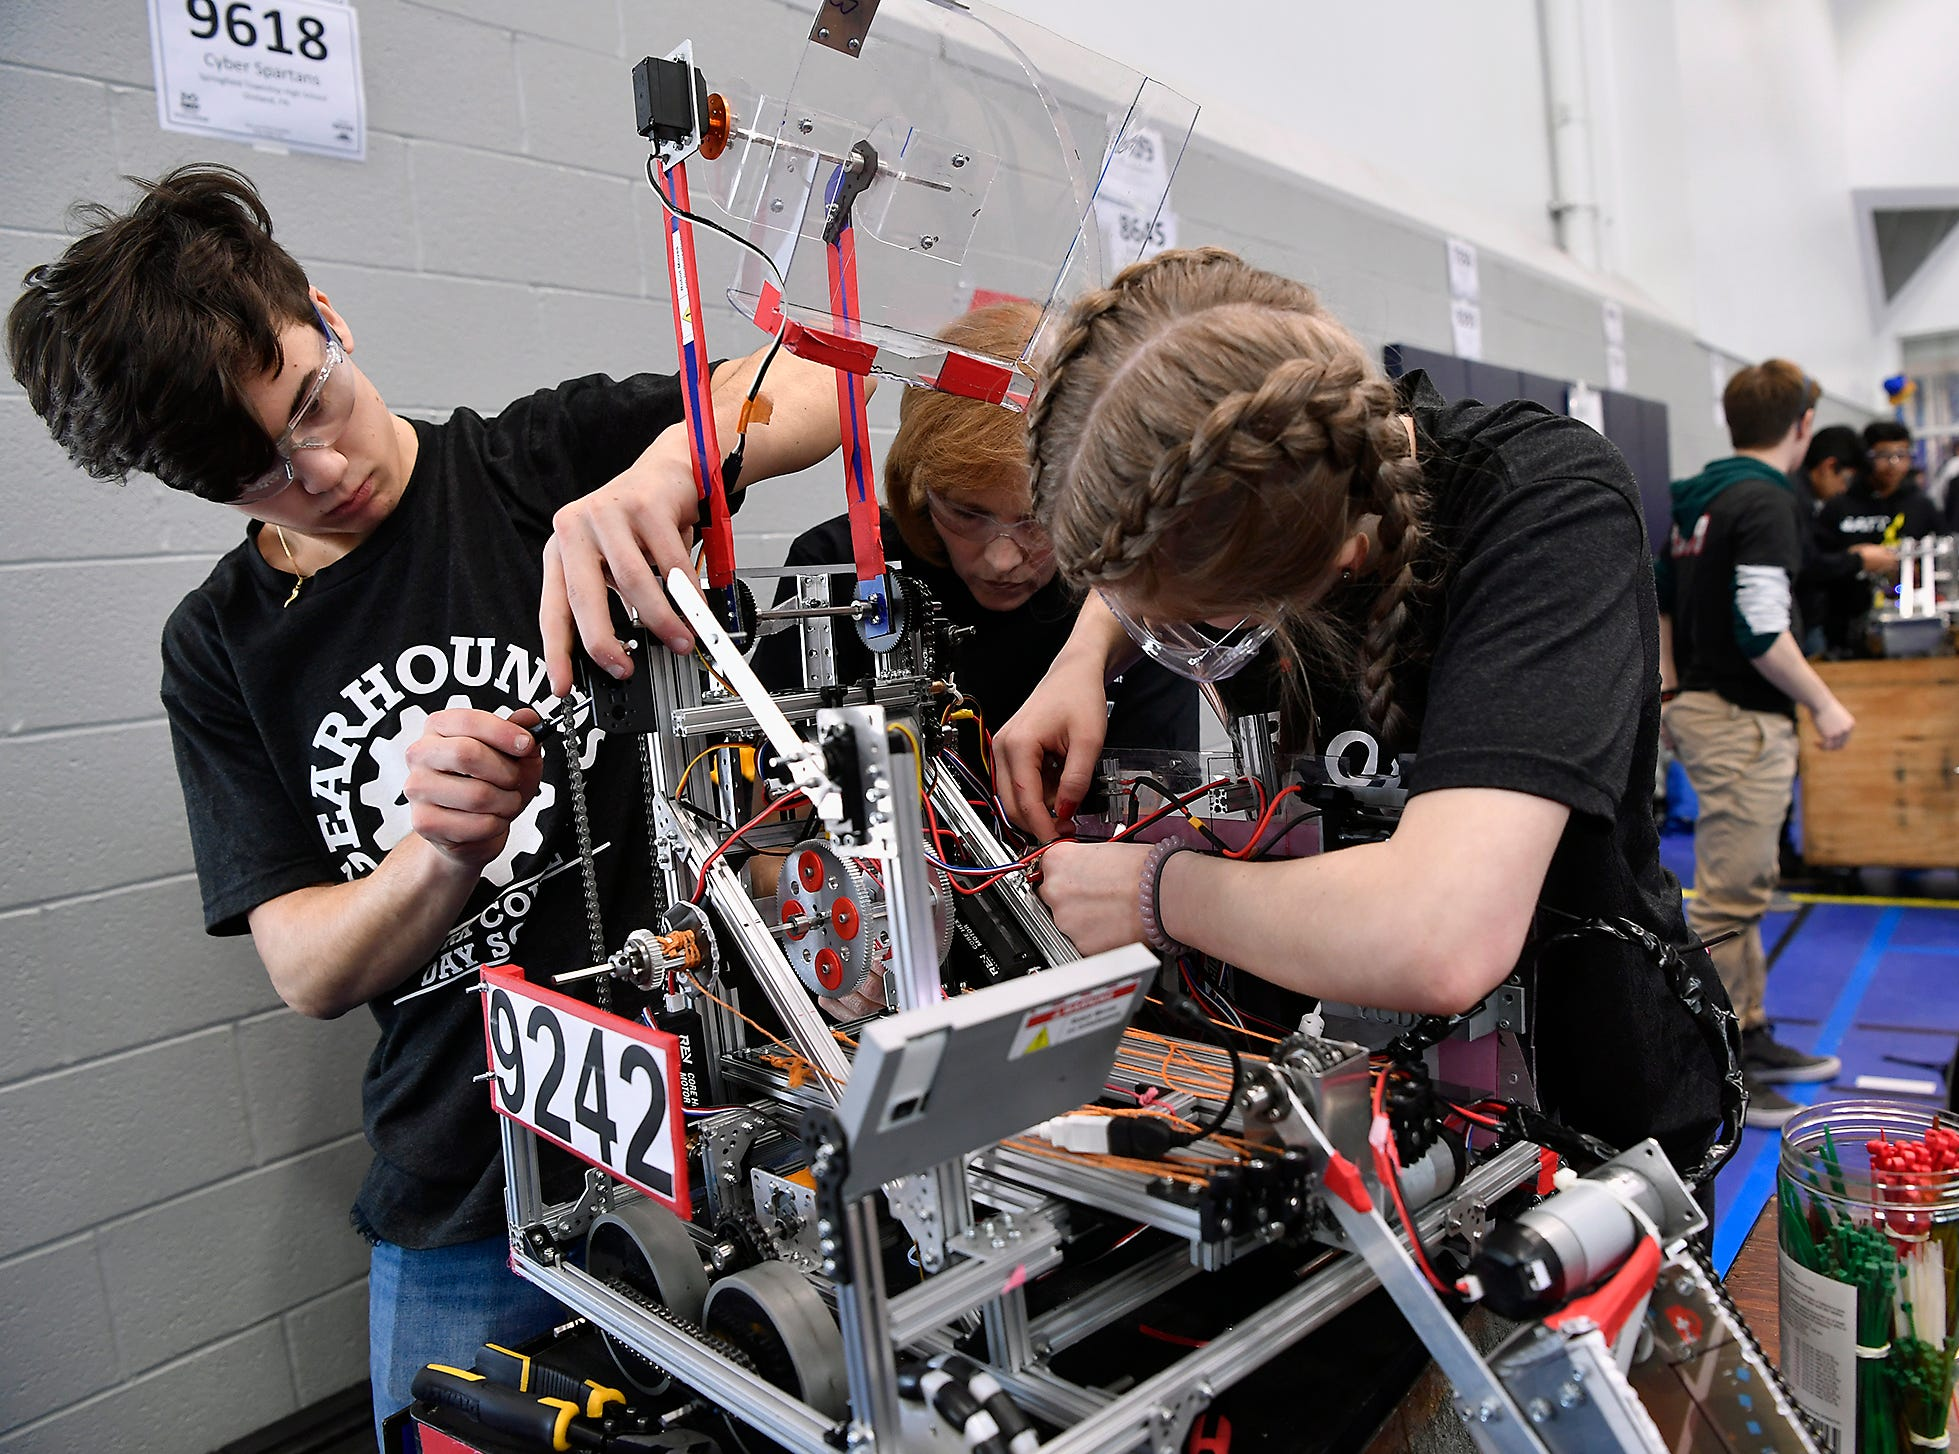 York Country Day students Christian Morino, left, and Juliet Jacob work with advisor Amy Harmon-Krtanjek to make adjustments to the GearHounds robot during the Rover Ruckus robotics tournament at Penn State York, Sunday, February 3, 2019. John A. Pavoncello photo